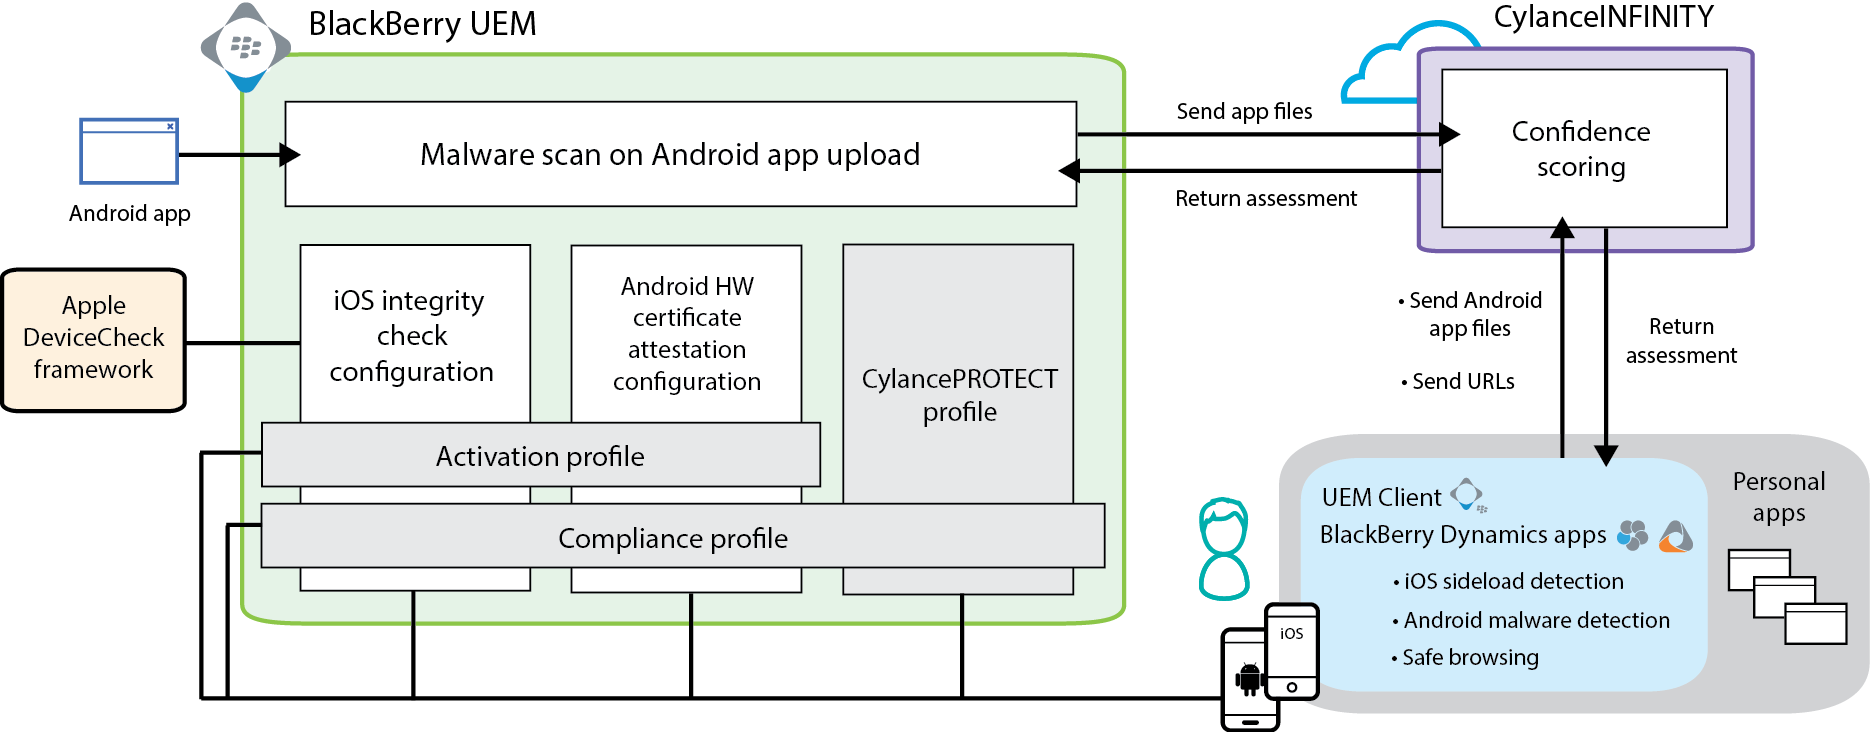 The UEM, device, and cloud components of the CylancePROTECT architecture